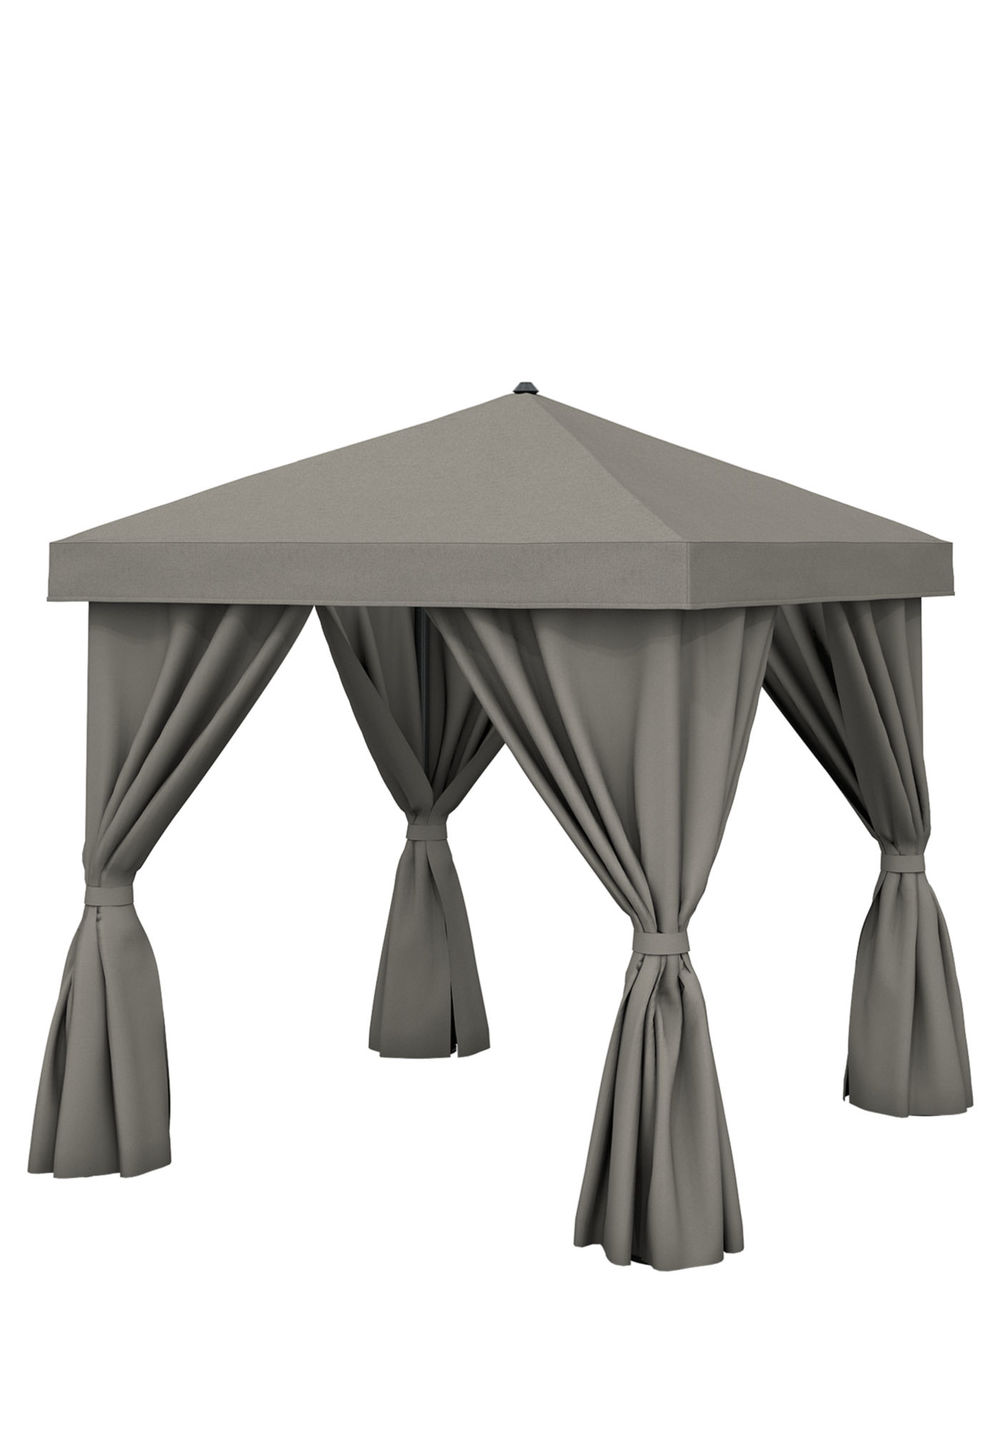 Tropitone Furniture - 8'x8' Square with Fabric Curtains, No Vent